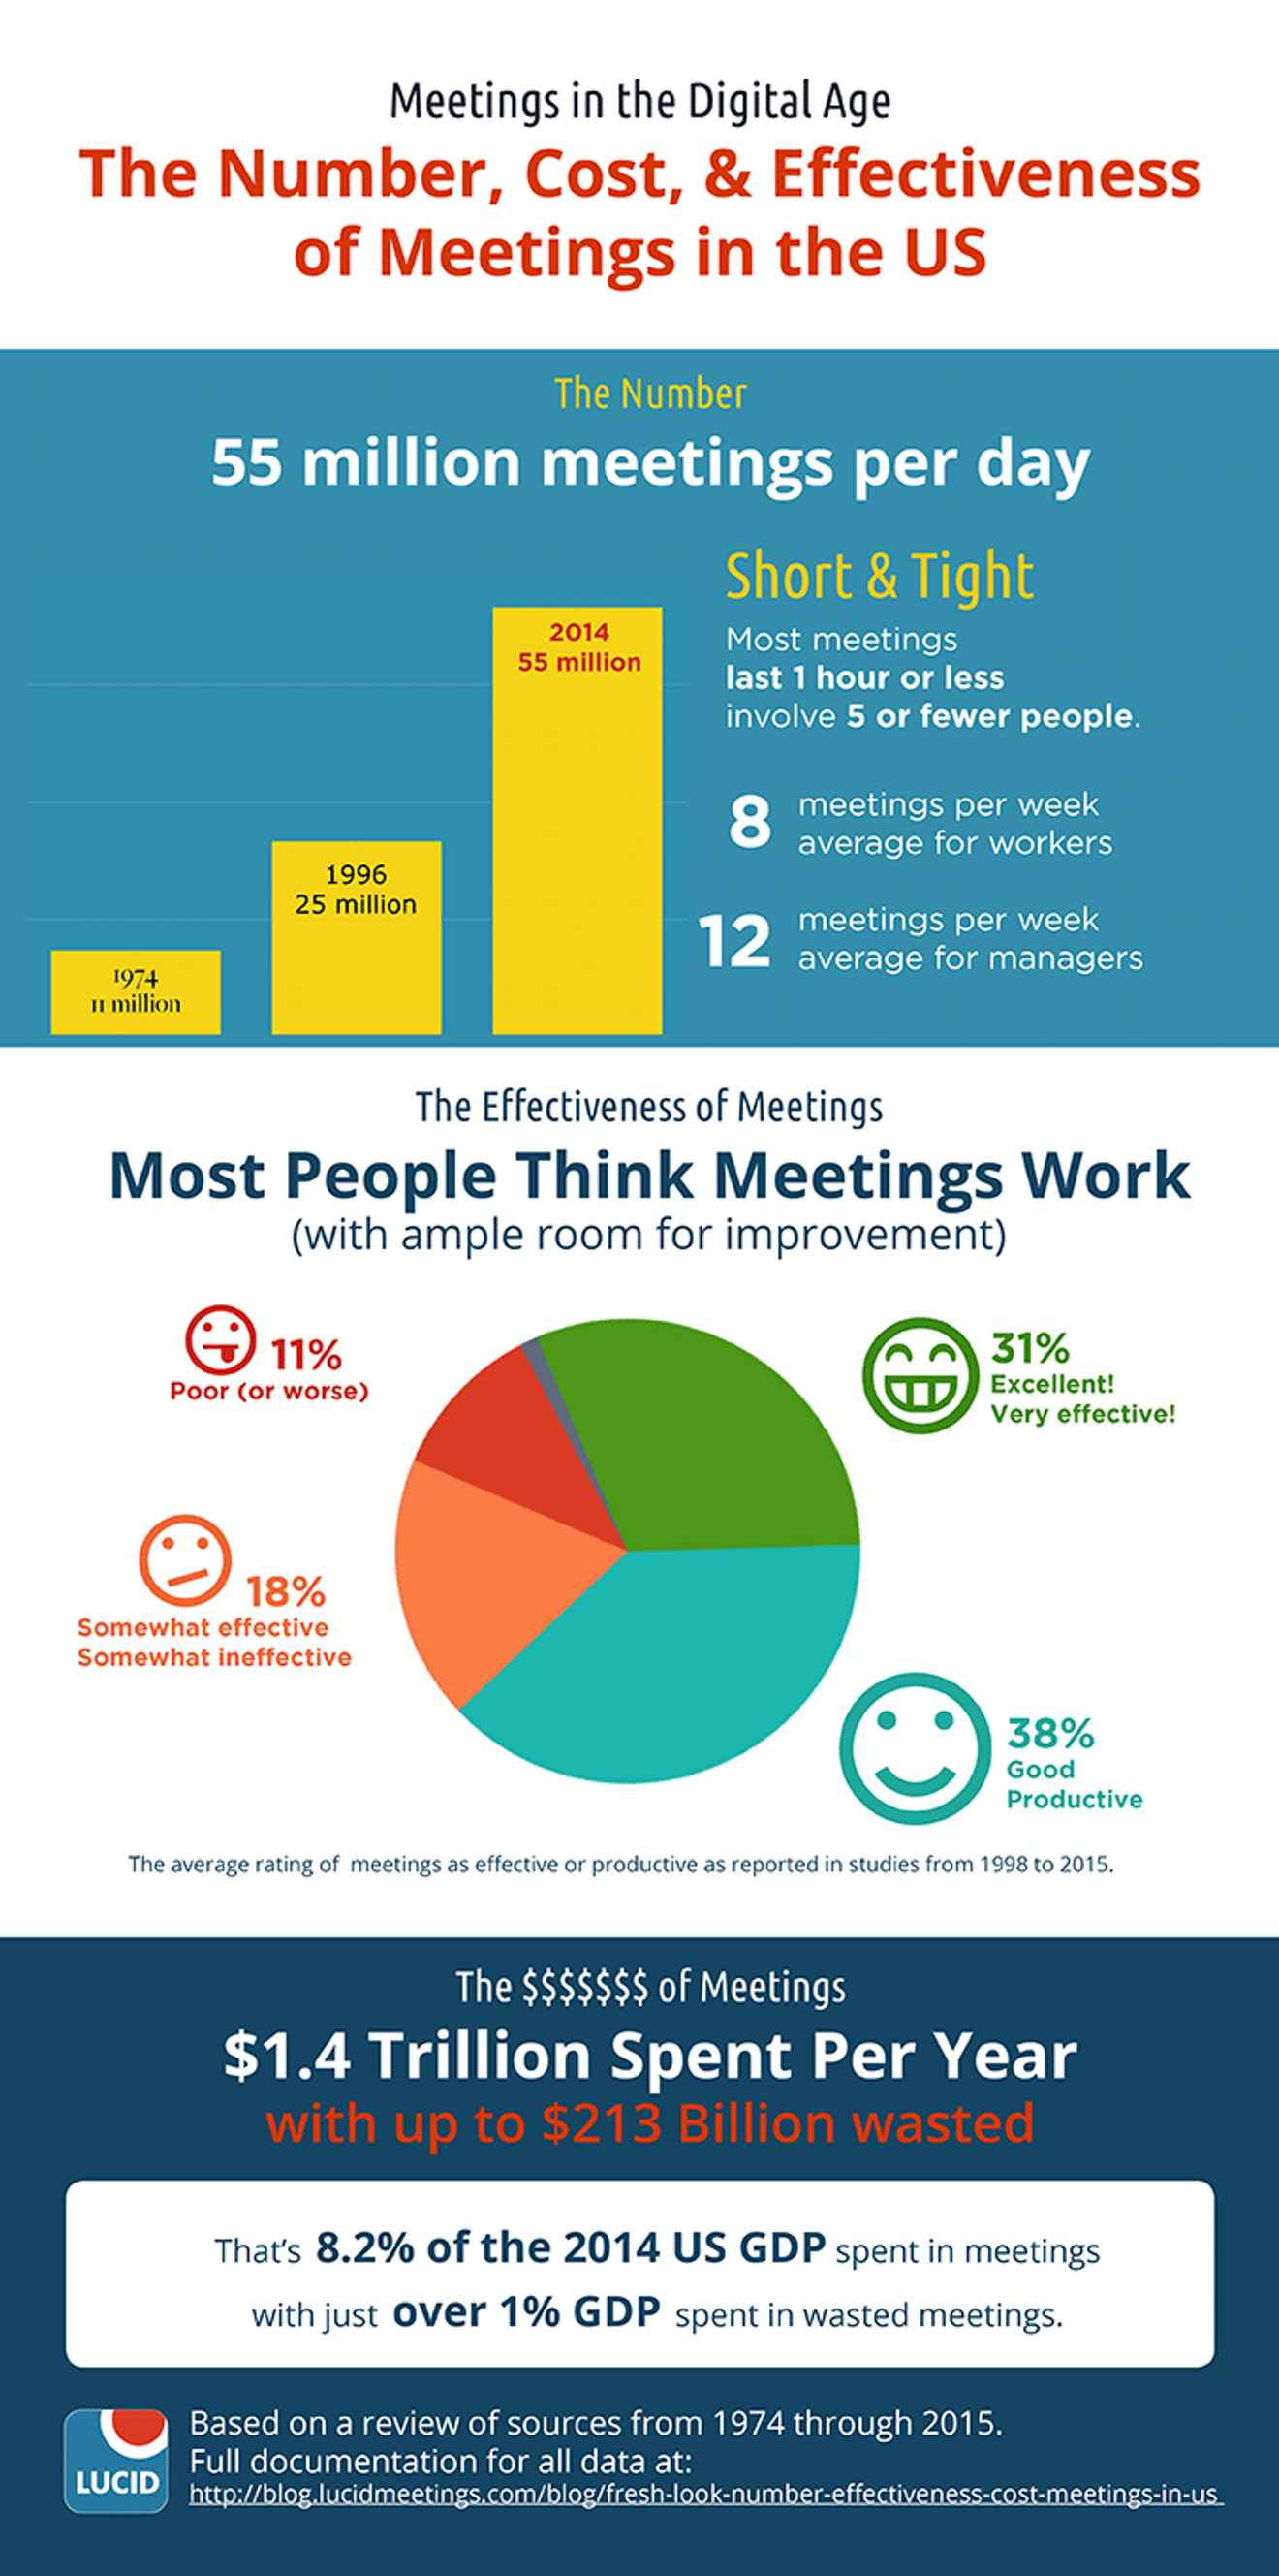 The number, cost, and effectiveness of meetings in the US